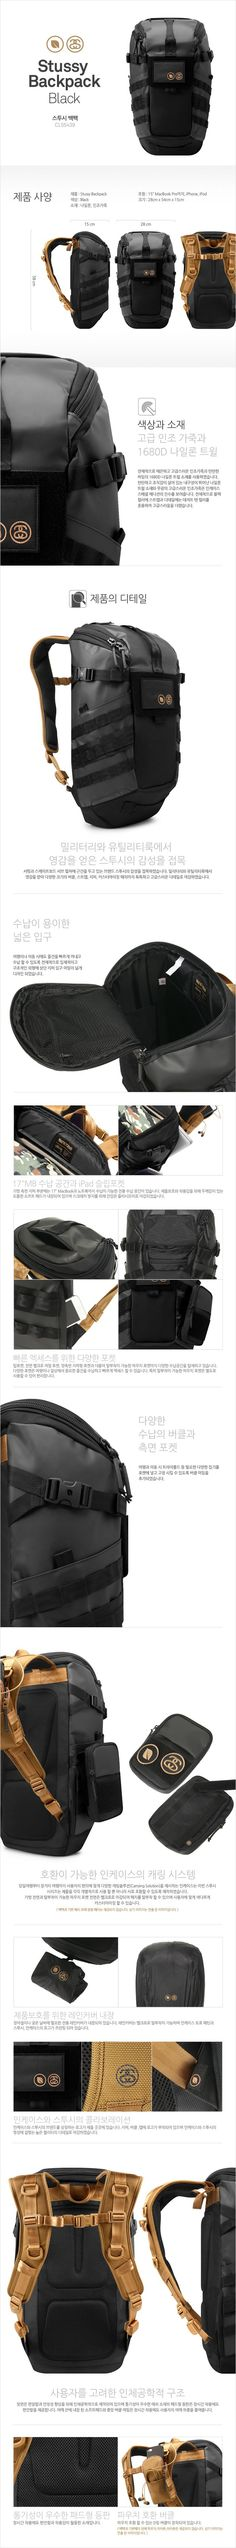 Stussy Backpack - Incase Korea #interface #ui #web